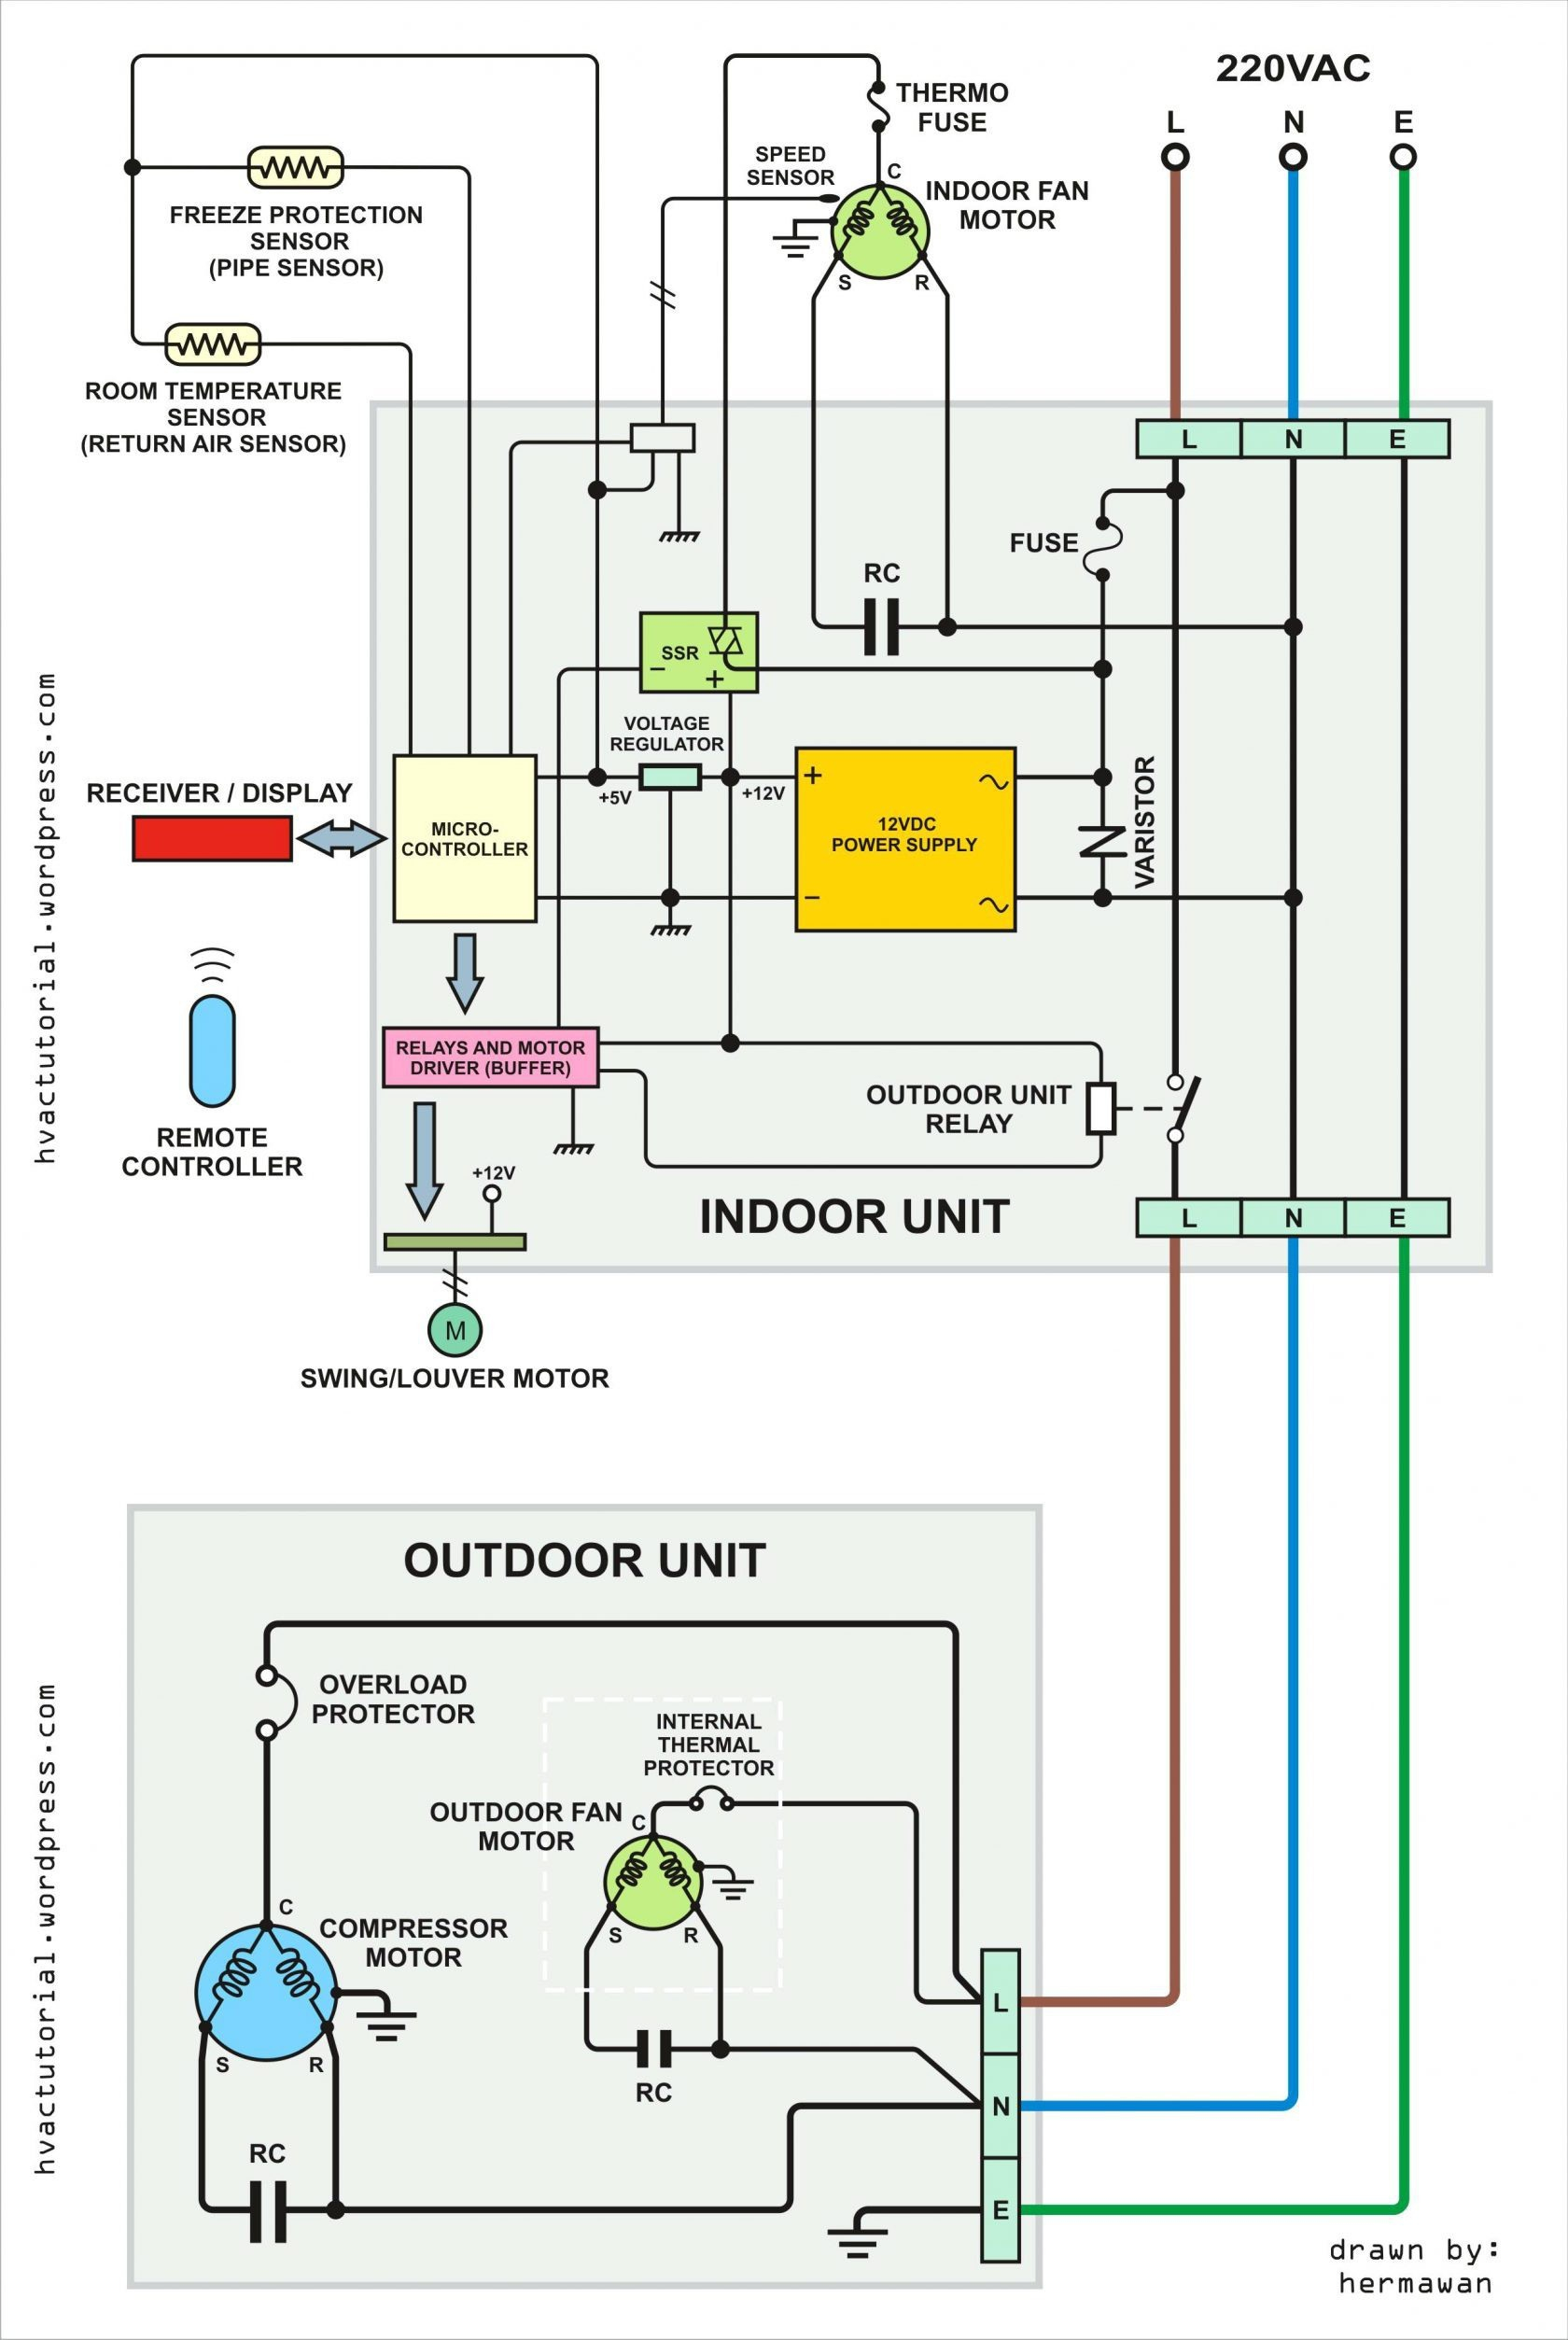 furnace blower motor wiring diagram Collection-Furnace Blower Motor Wiring Diagram Inspirational Category Wiring 0 5-f